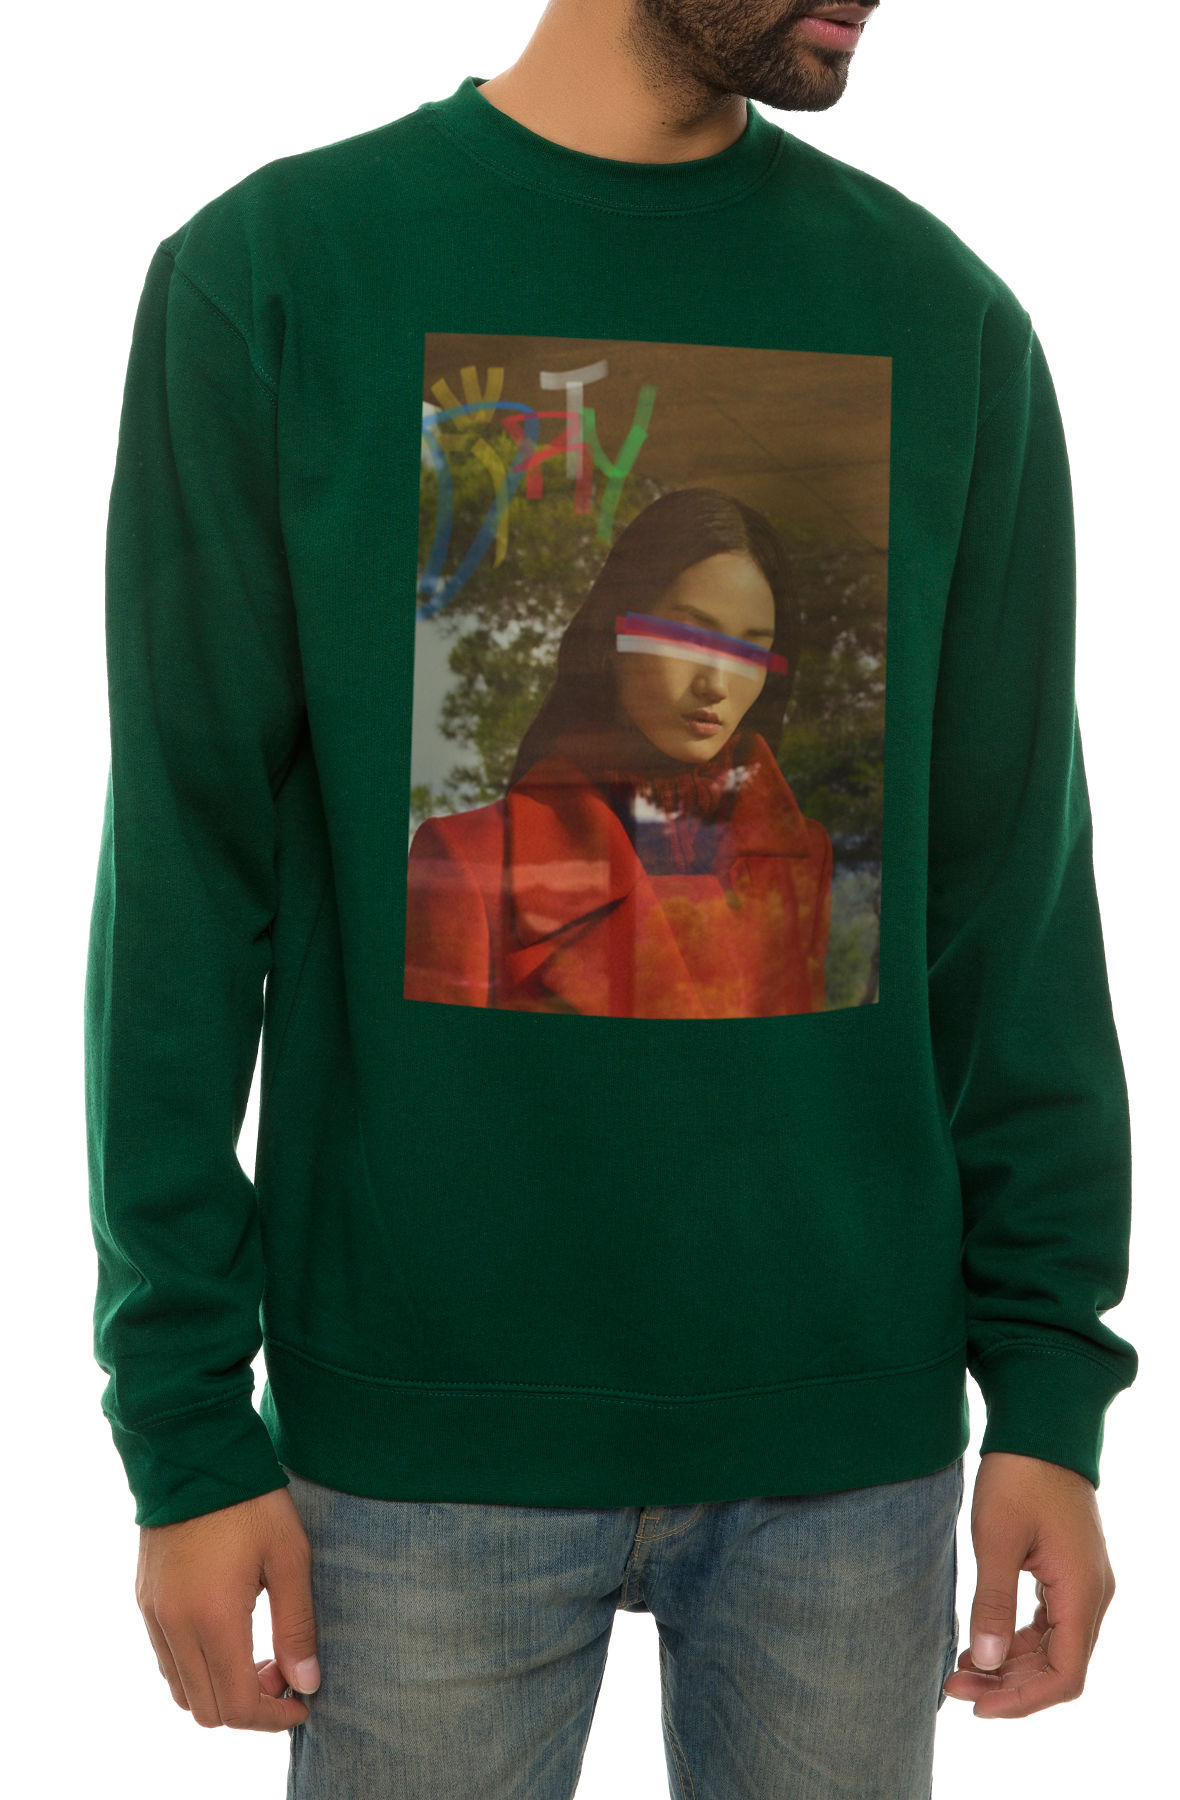 Image of The Lust 70 Crewneck Sweatshirt in Green